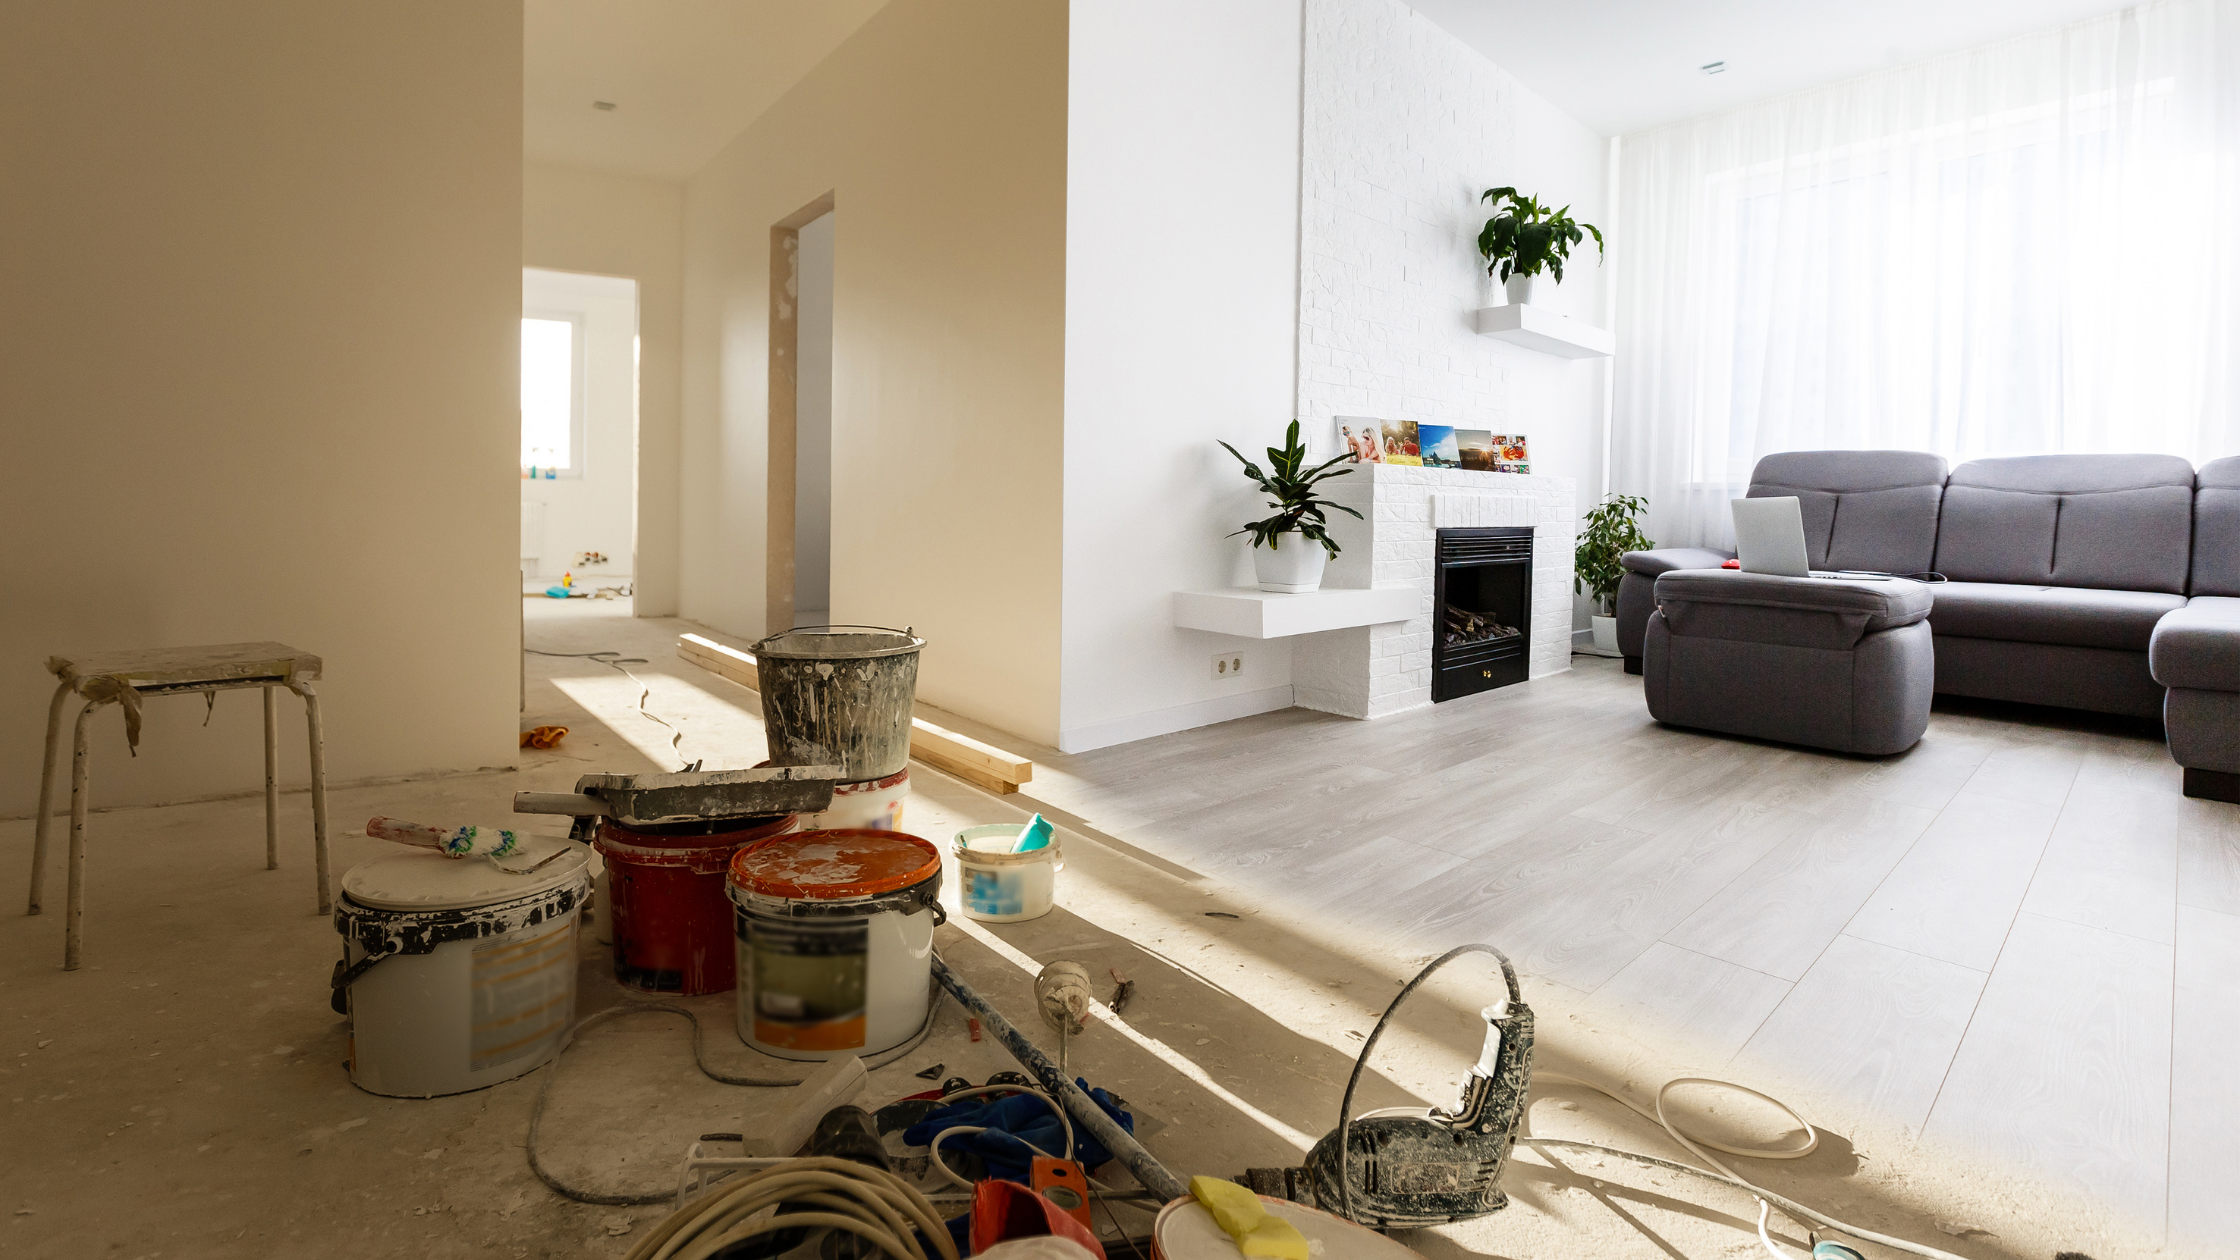 The before and after transformation of a renovation